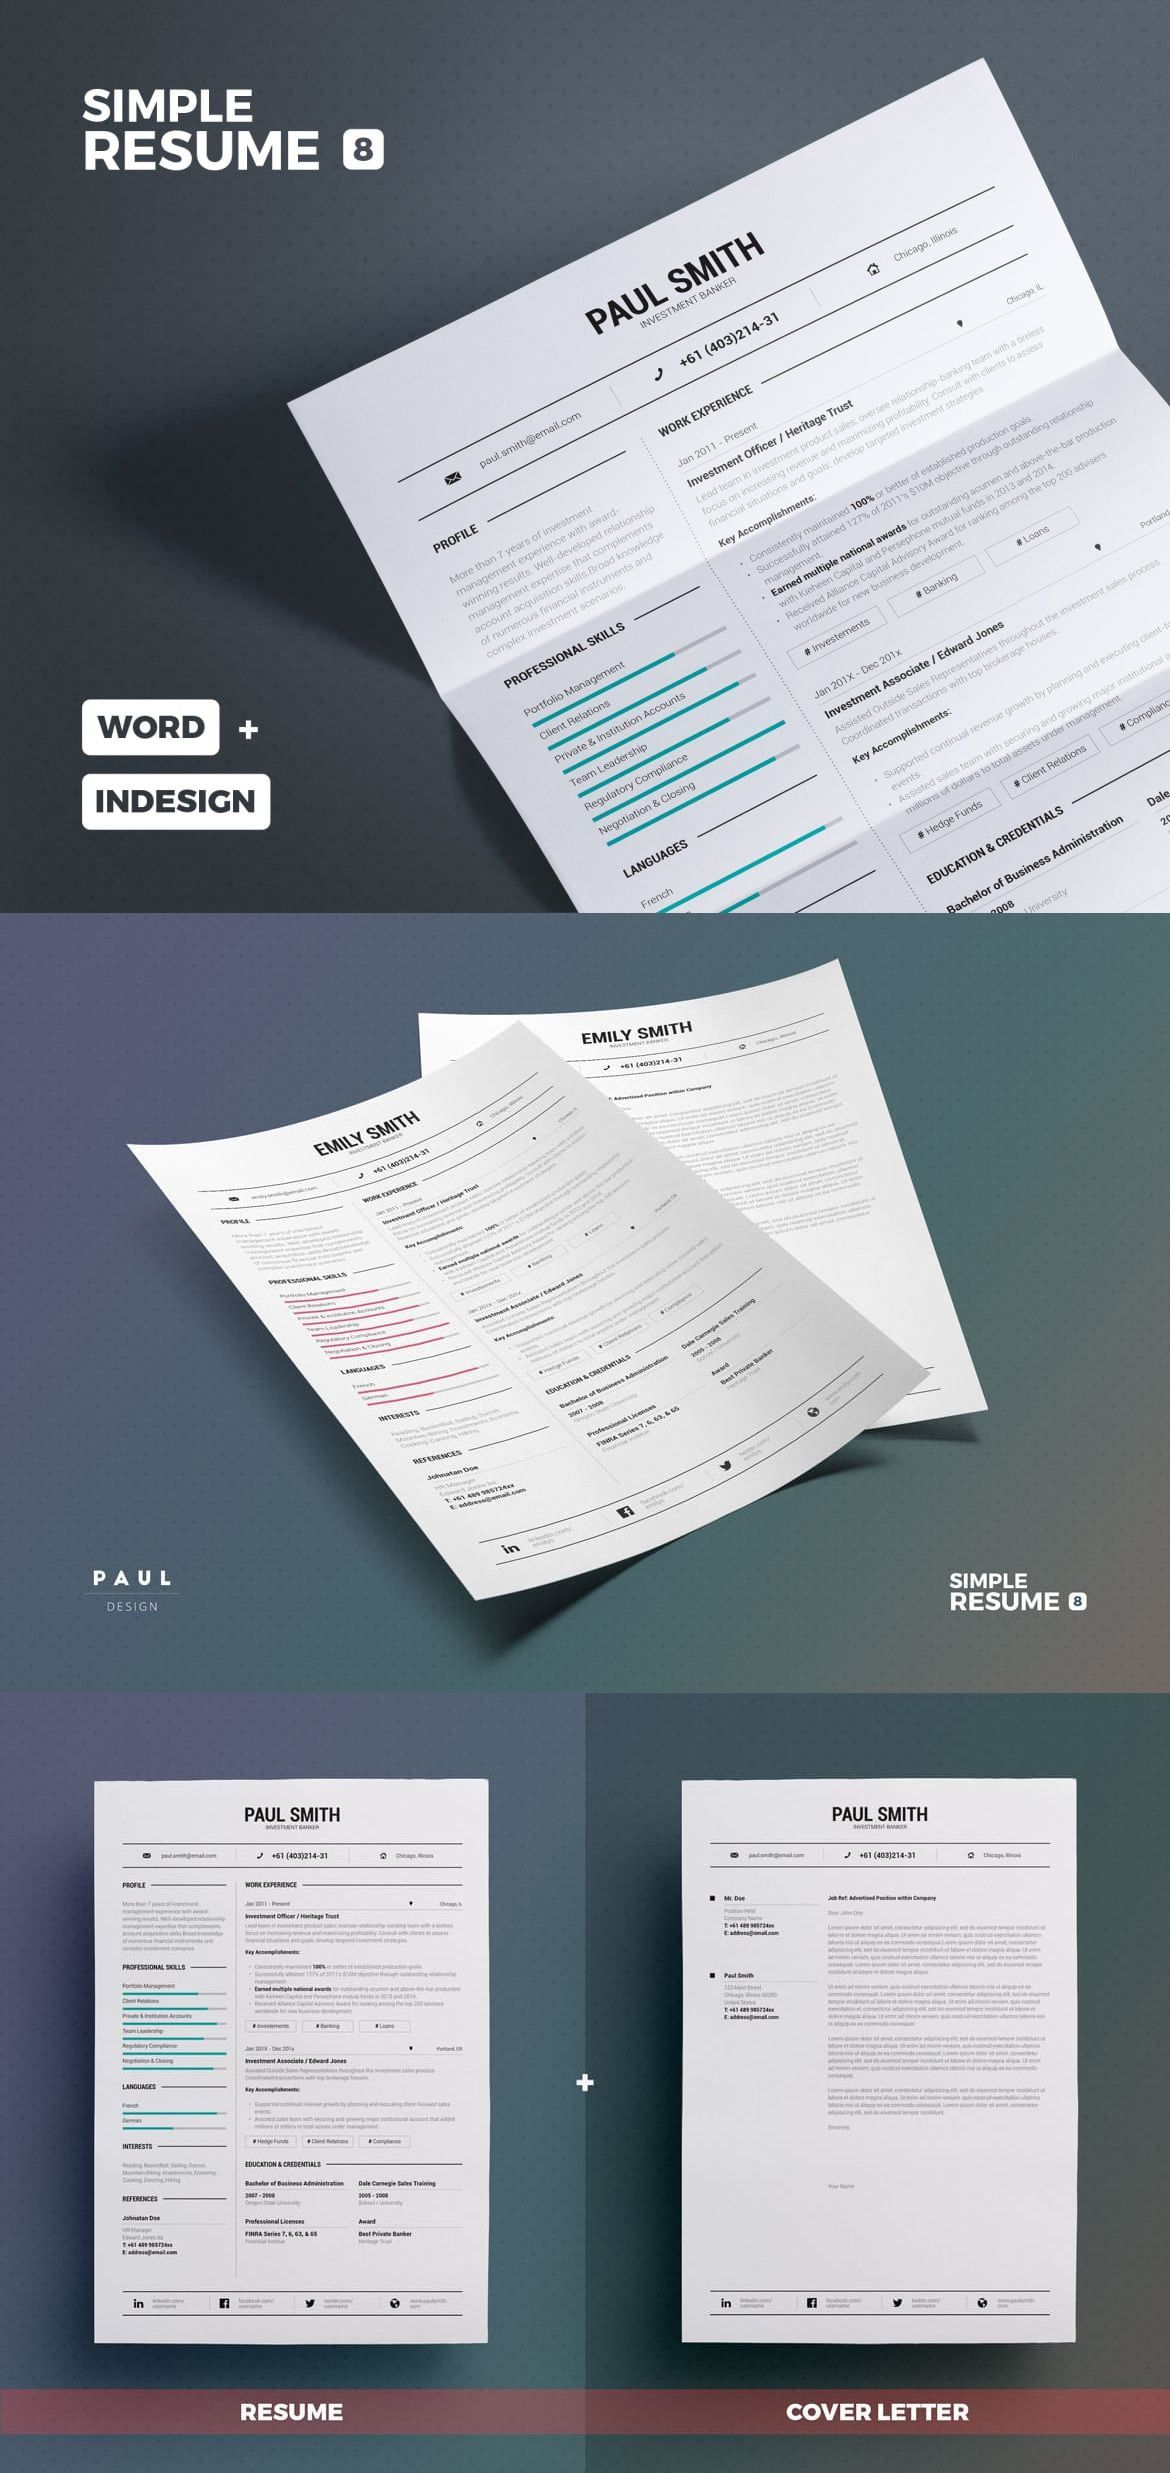 Simple Resume/Cv Template INDD A4 and US Letter Paper